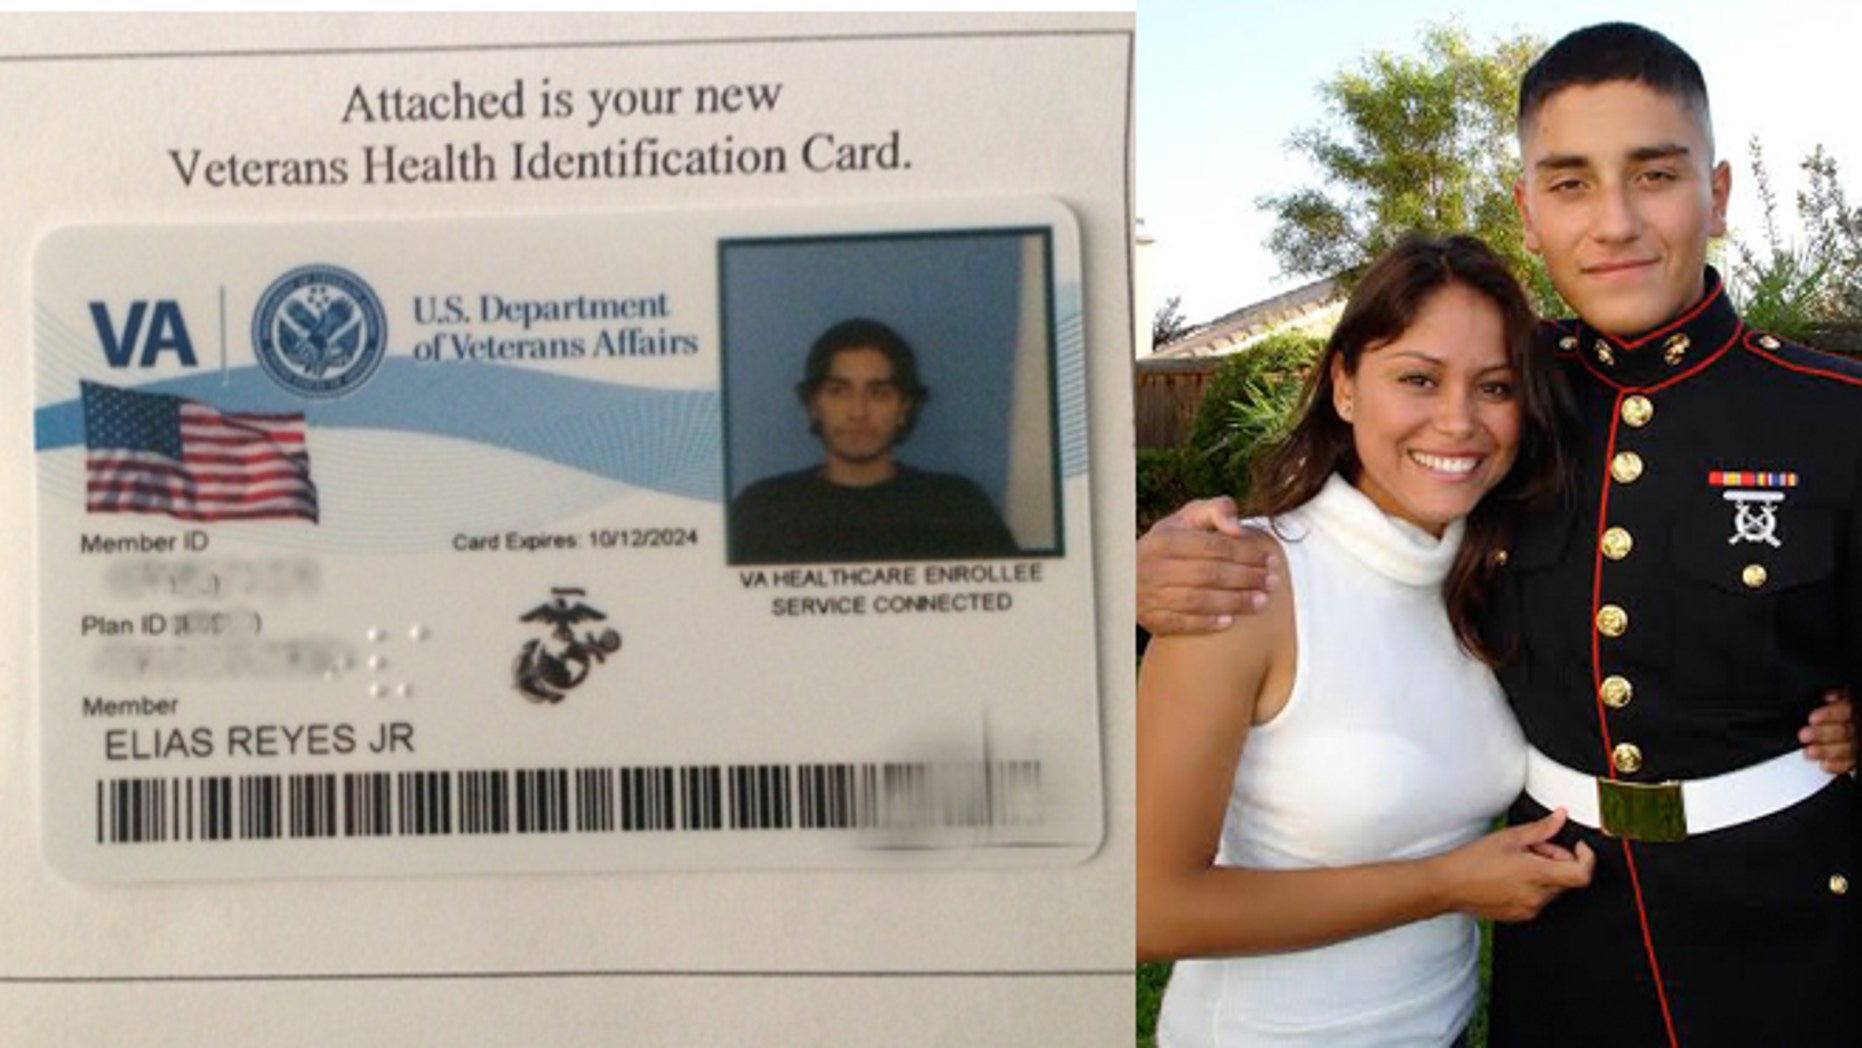 (Left) The Veterans Health Identification Card issued to Corporal Elias Reyes Jr.. (Right) It was sent to his sister Margarita Reyes on Tuesday, October 28th. Elias died on April 12th of this year.